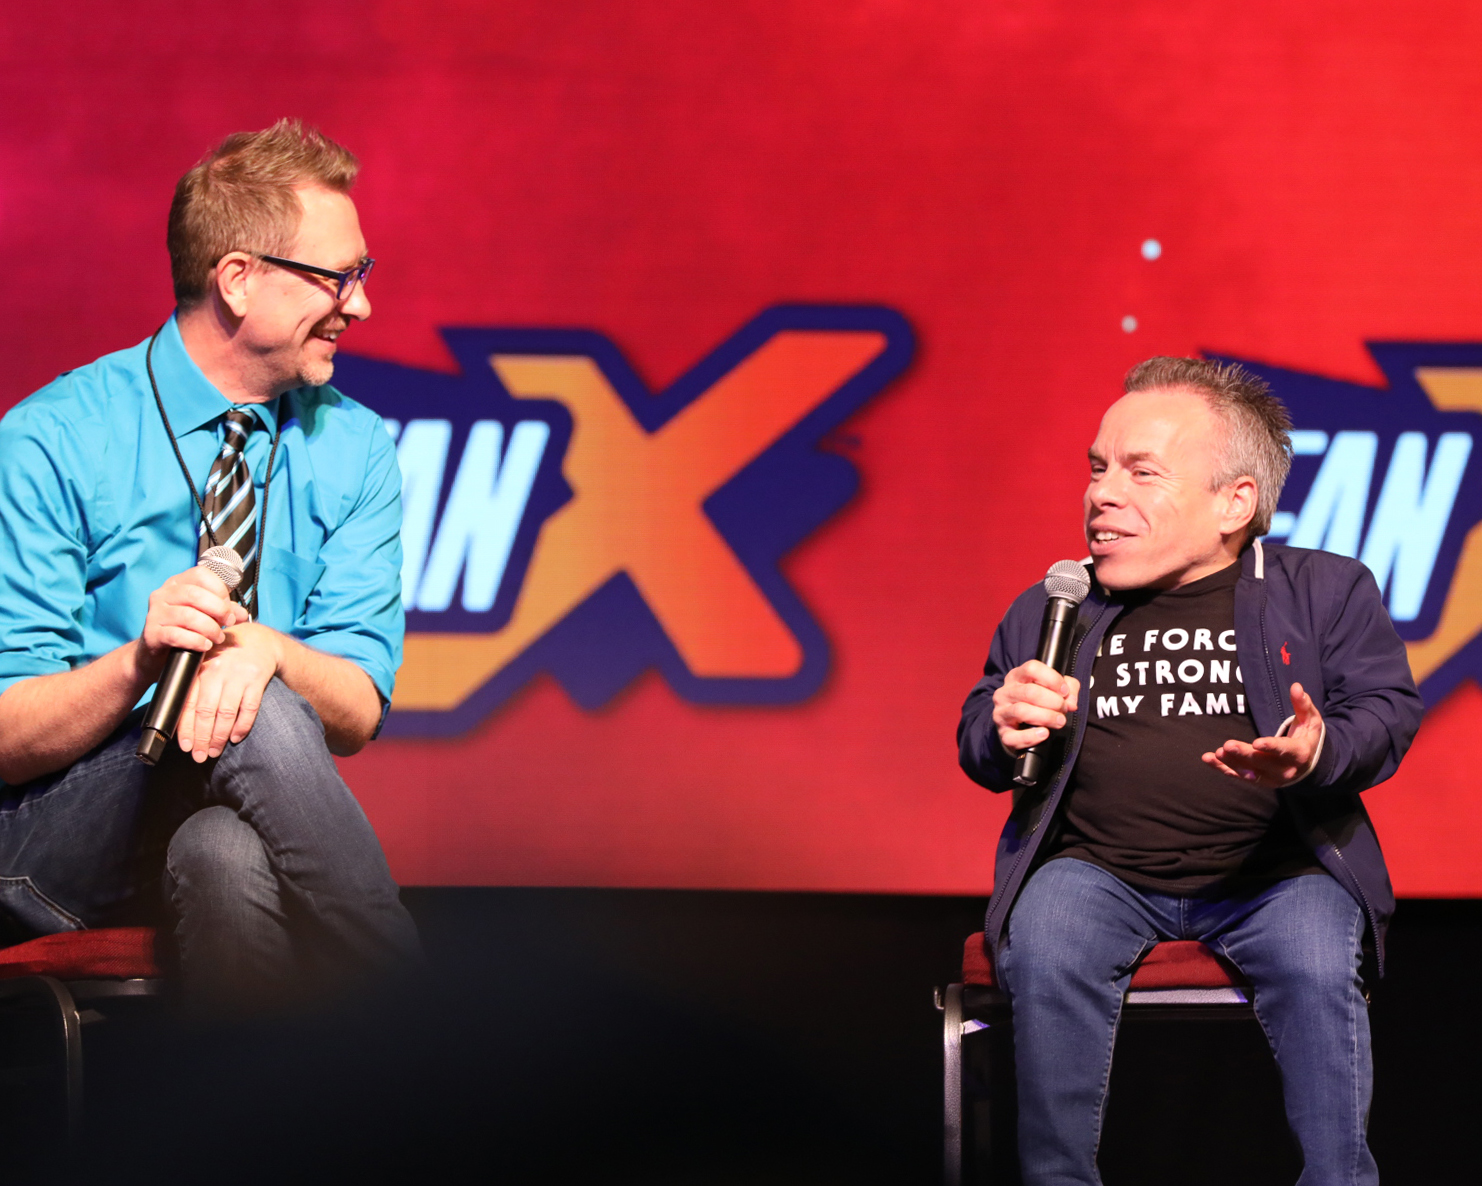 Actor Warwick Davis discusses acting, his first roles and fan favorite, Willow, with MC Chris Provost. Photo: @Lmsorenson